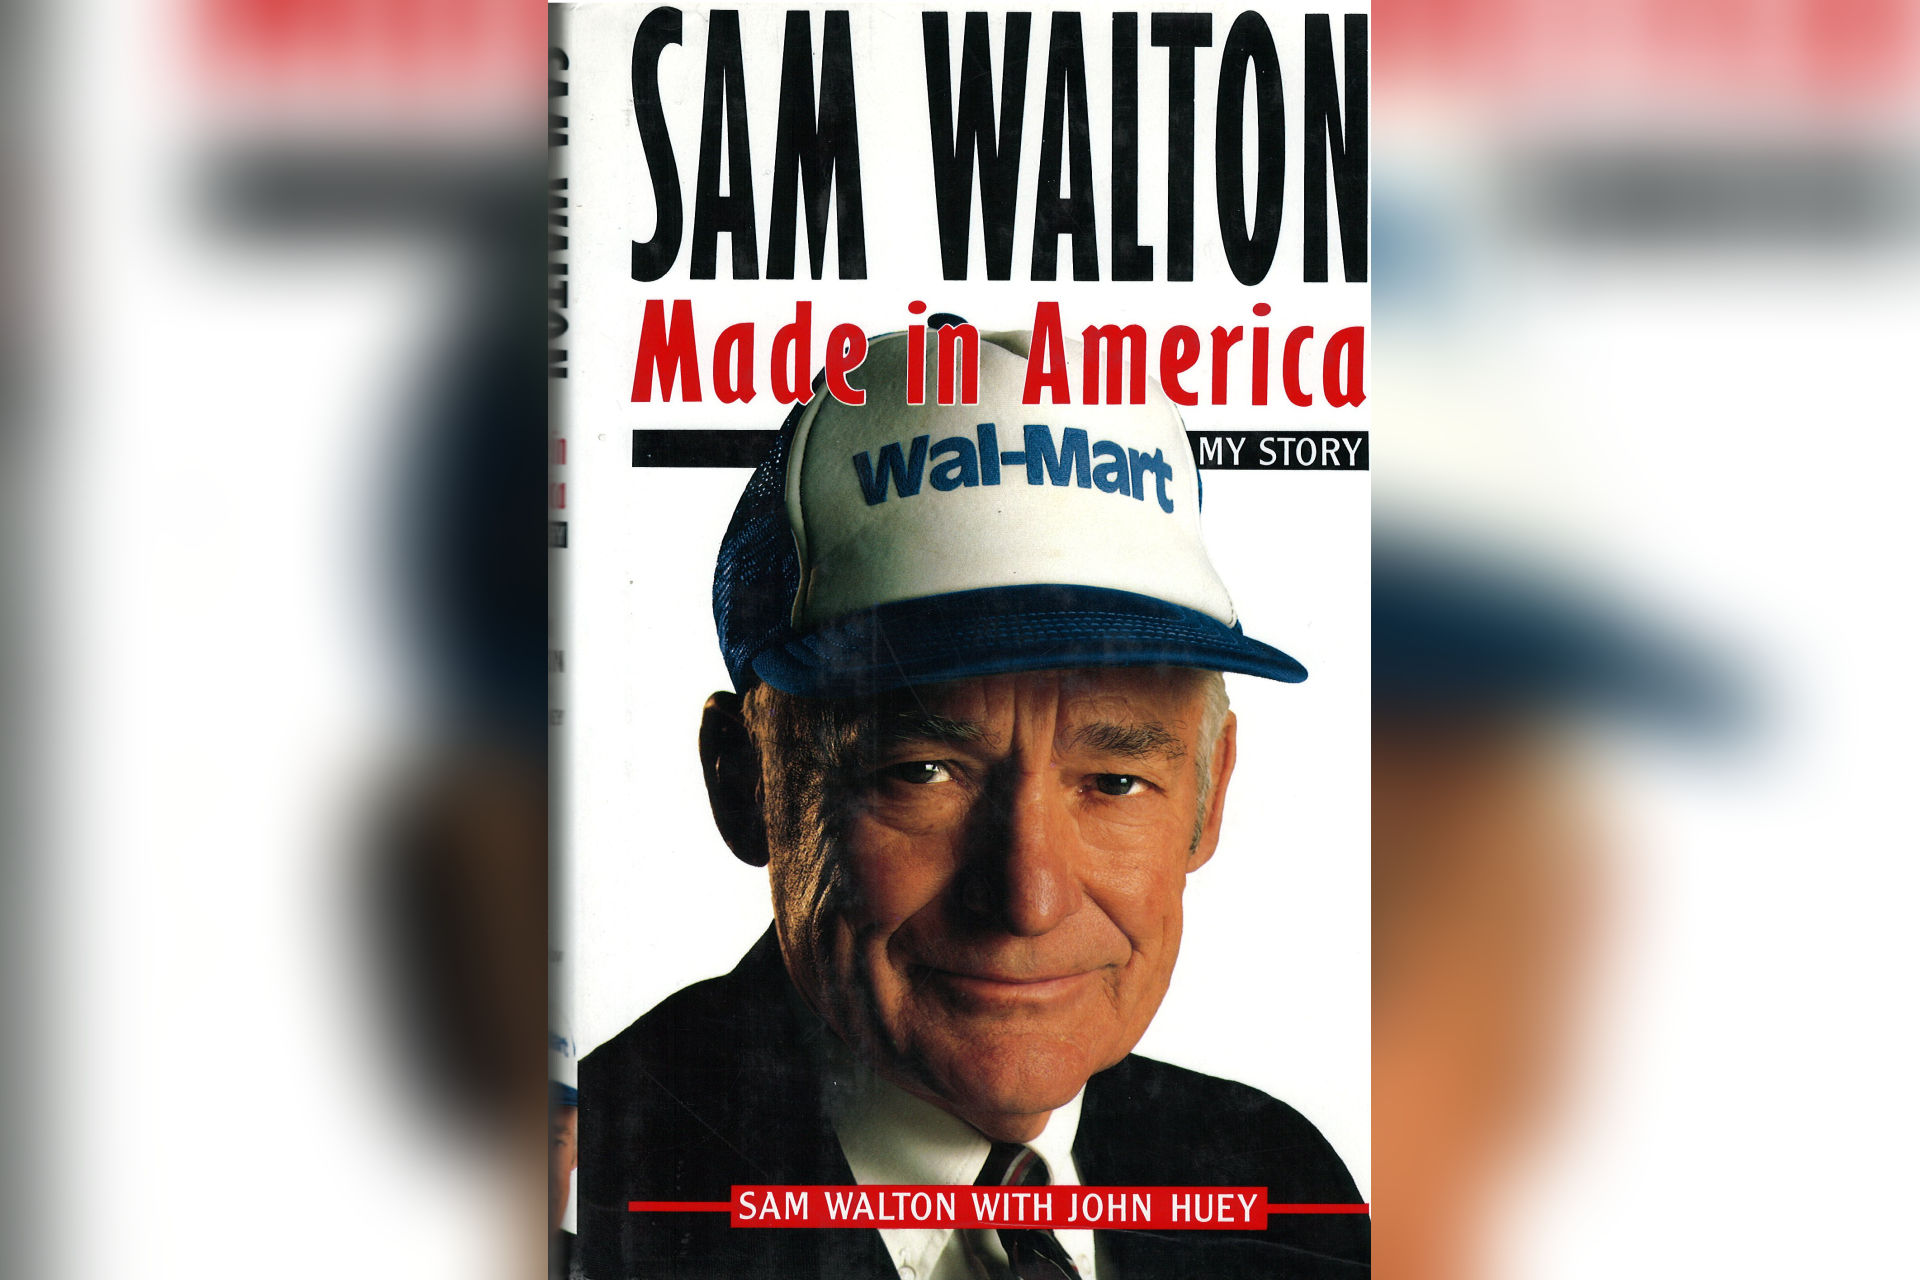 sam walton management style Sam walton research their life, management style, employment background, and what skills, traits, and characteristics made them a good leader 1,496 words and five references © brainmass inc brainmasscom september 9, 2018, 2:56 pm ad1c9bdddf.